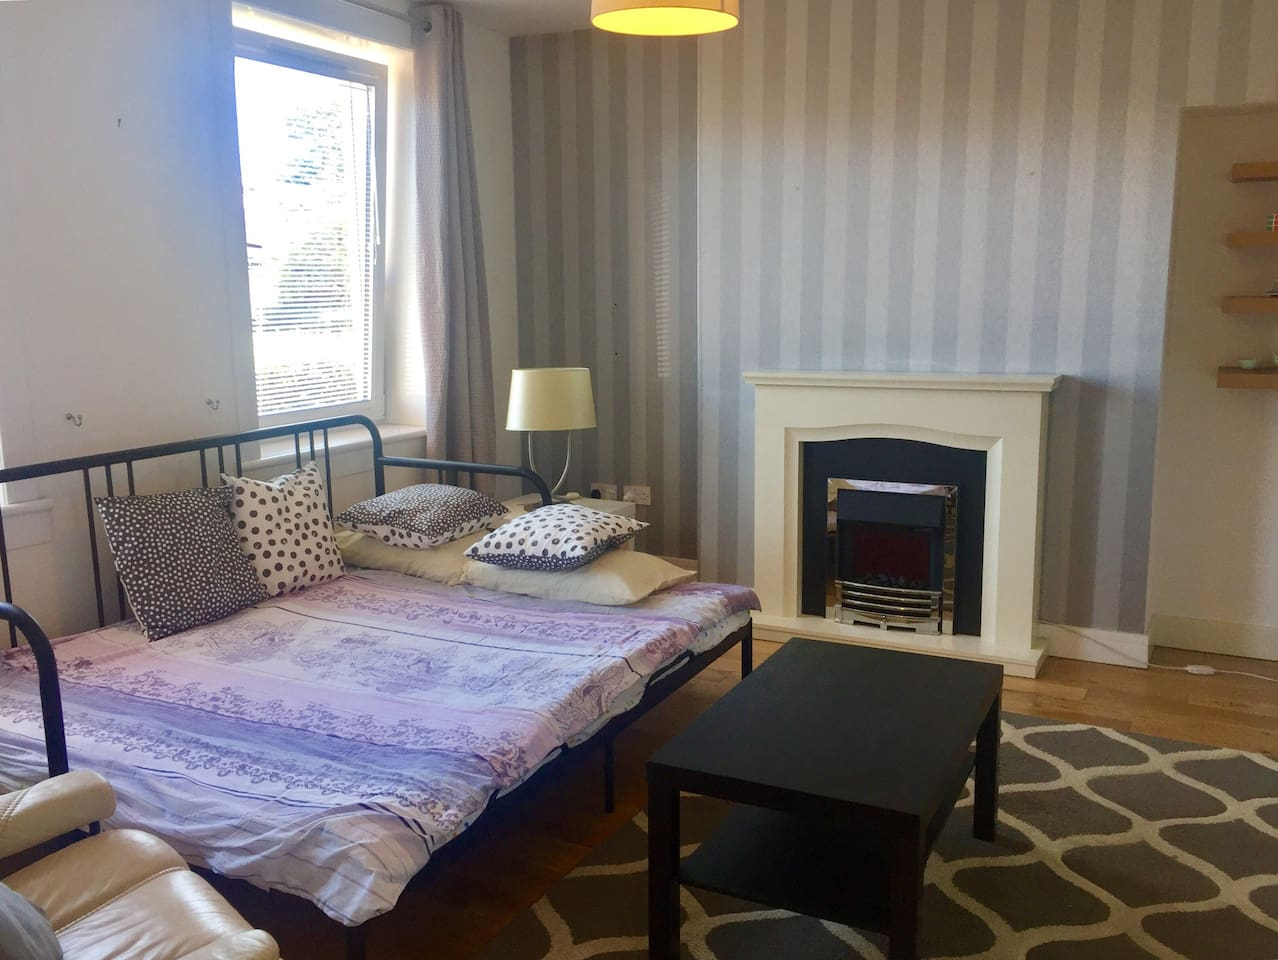 Large bedroom with king size sofa bed, double glass with shades, comfy armchair, tables, full size mirror and central heating.